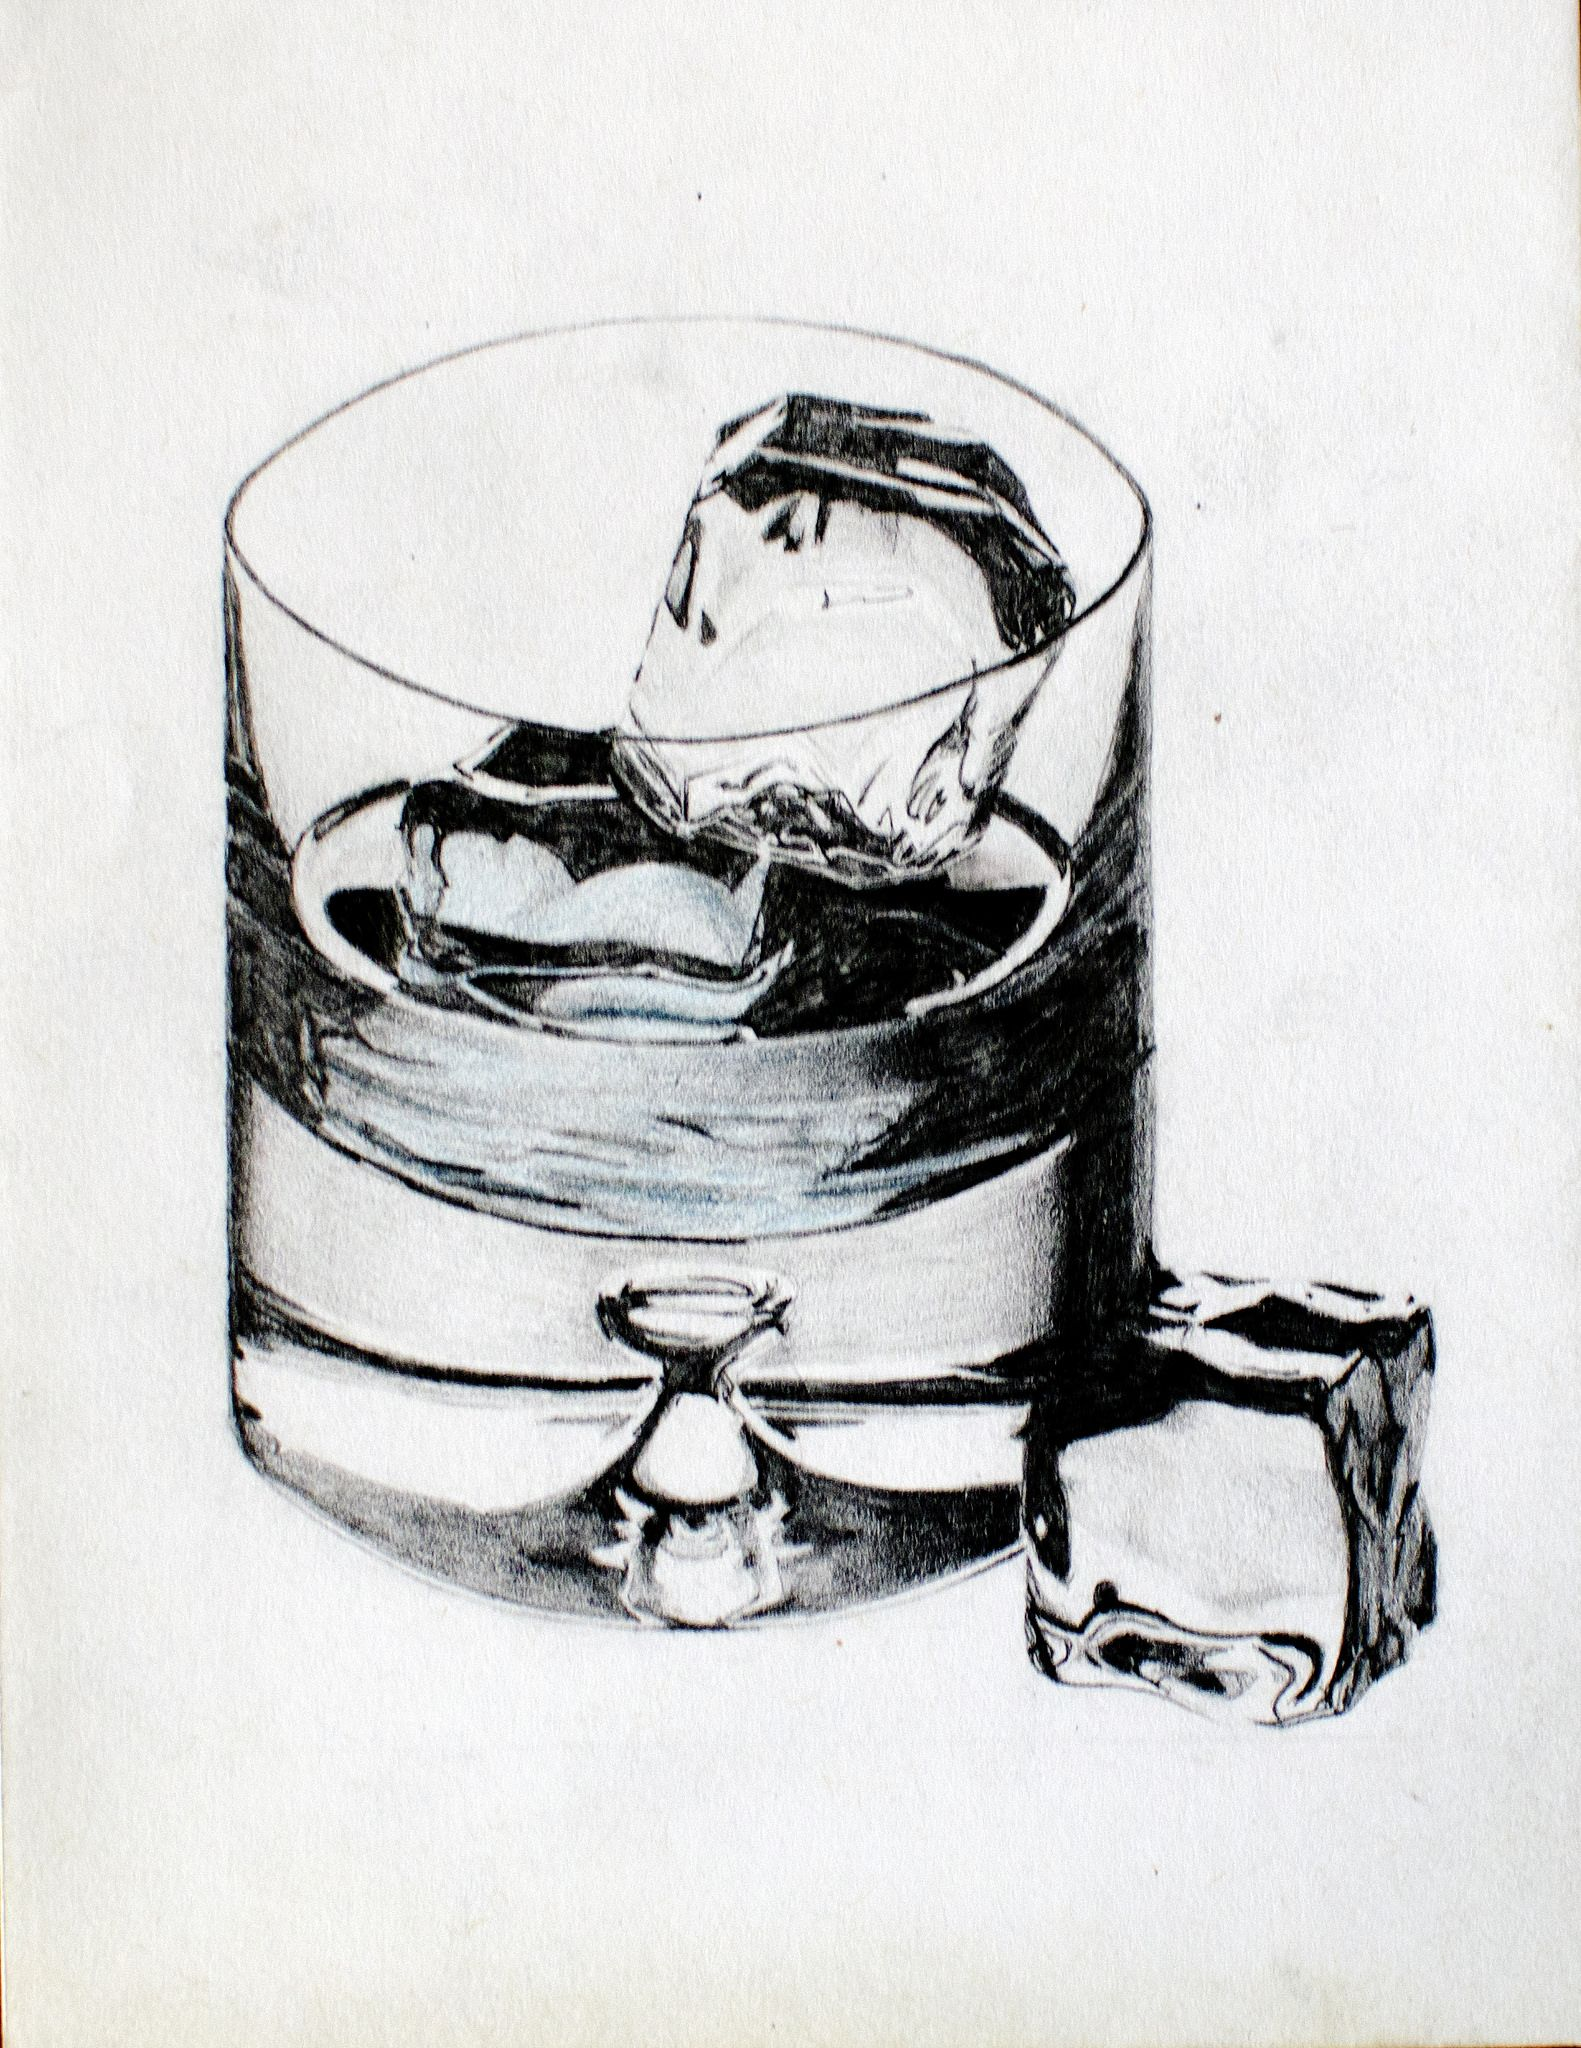 glass of whiskey ice cubes tattoo design my art pinterest tattoo designs tattoo and tatt. Black Bedroom Furniture Sets. Home Design Ideas